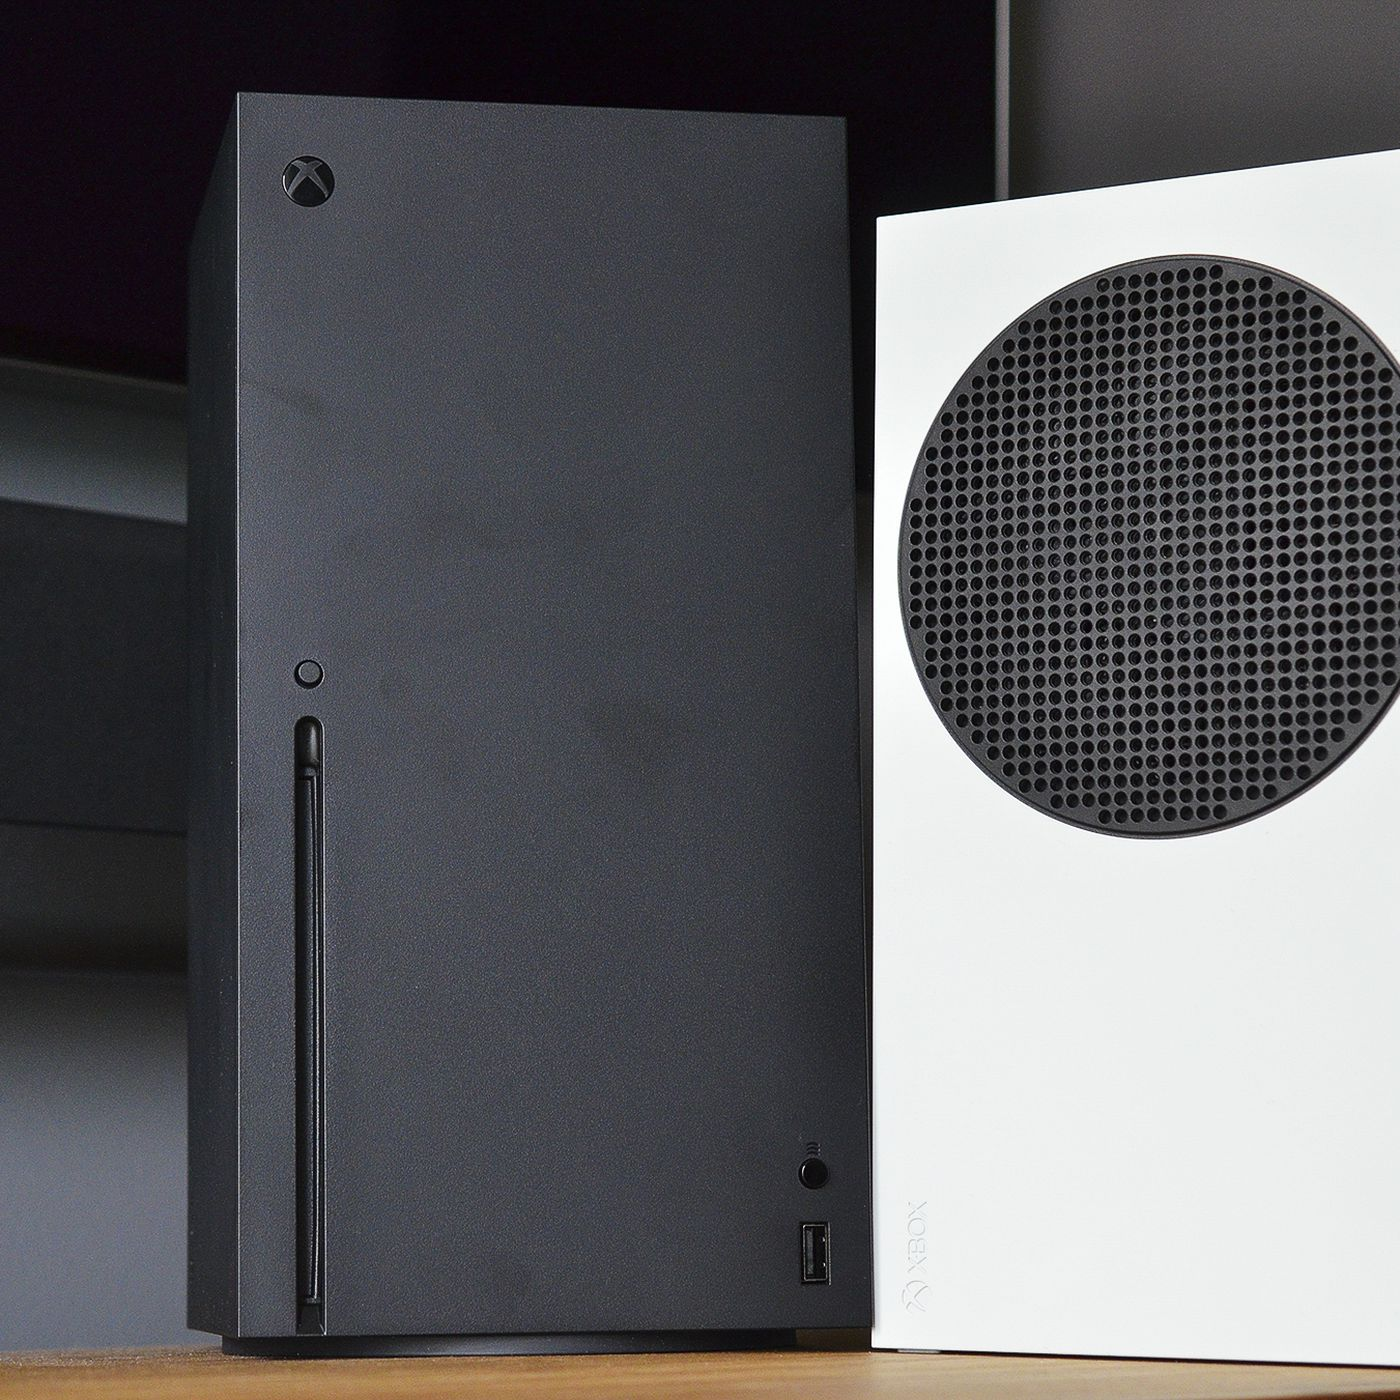 Xbox Series X And S Everything You Need To Know About The Next Gen Of Xbox The Verge